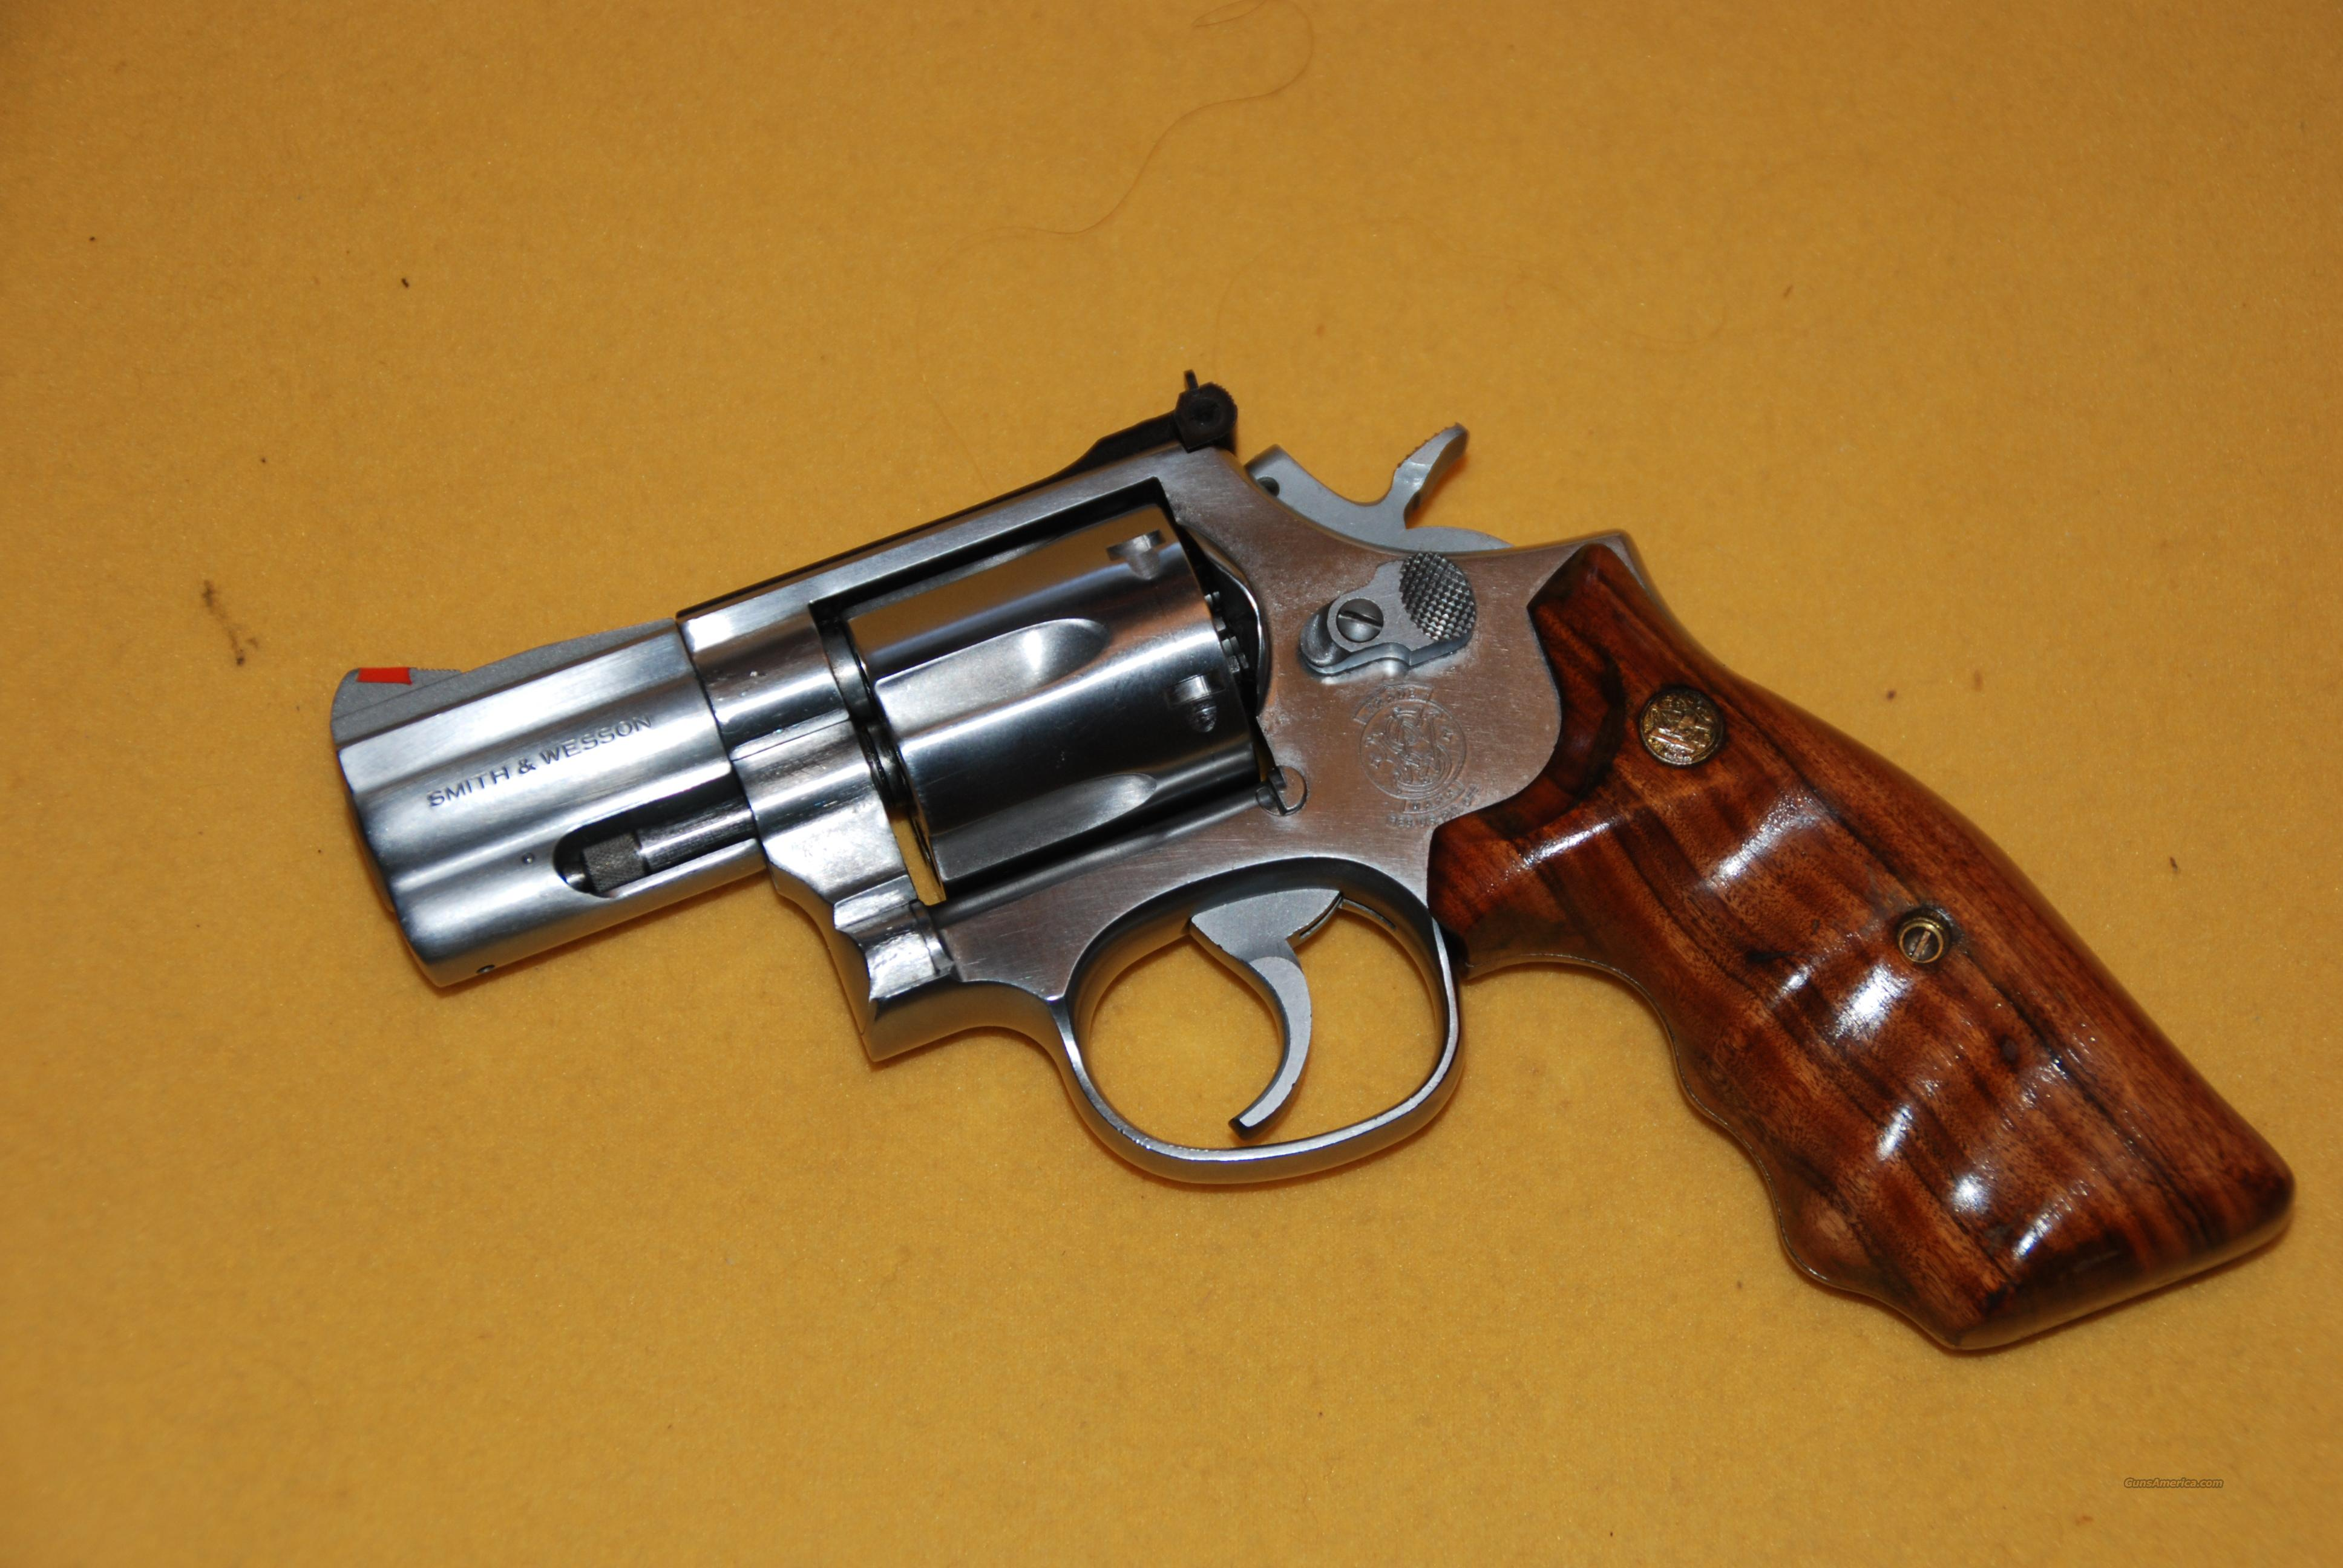 "Smith & Wesson Model 686-3  2 1'2"" Stainless 357 Magnum  Guns > Pistols > Smith & Wesson Revolvers > Full Frame Revolver"